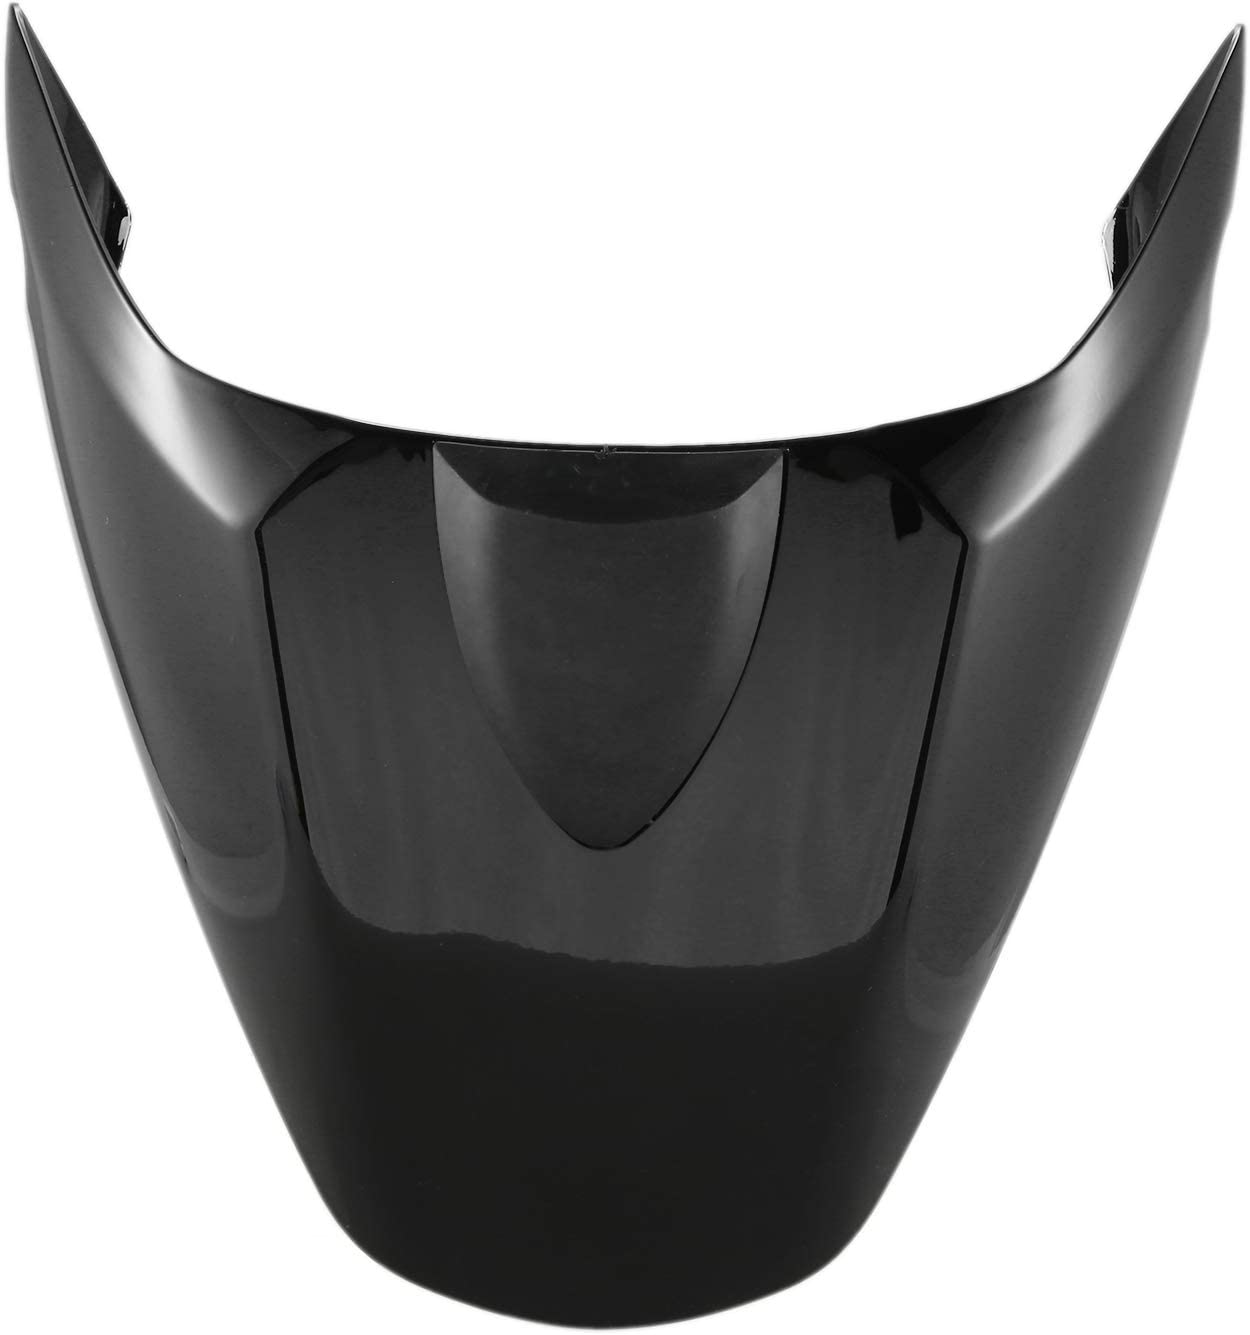 for Ducati 696 795 796 1100 2009-2012 Black Nrpfell Motorcycle Rear Pillion Seat Cover Passenger Seat Cover Hard Seat Cowl Hump Fairing